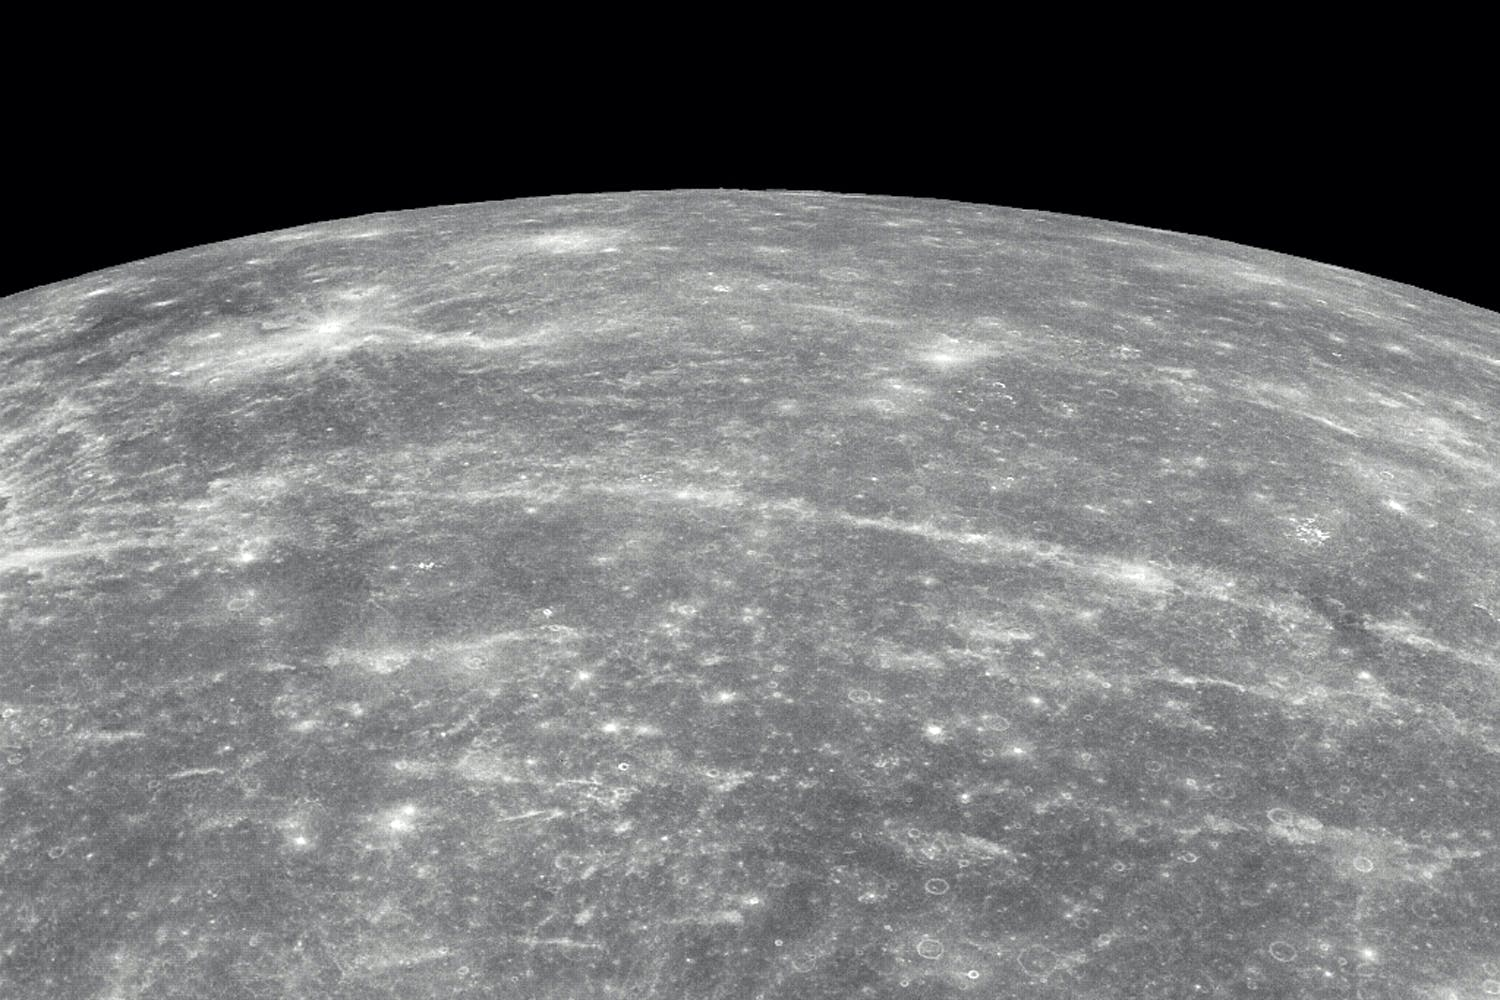 Mercury seen from Messenger